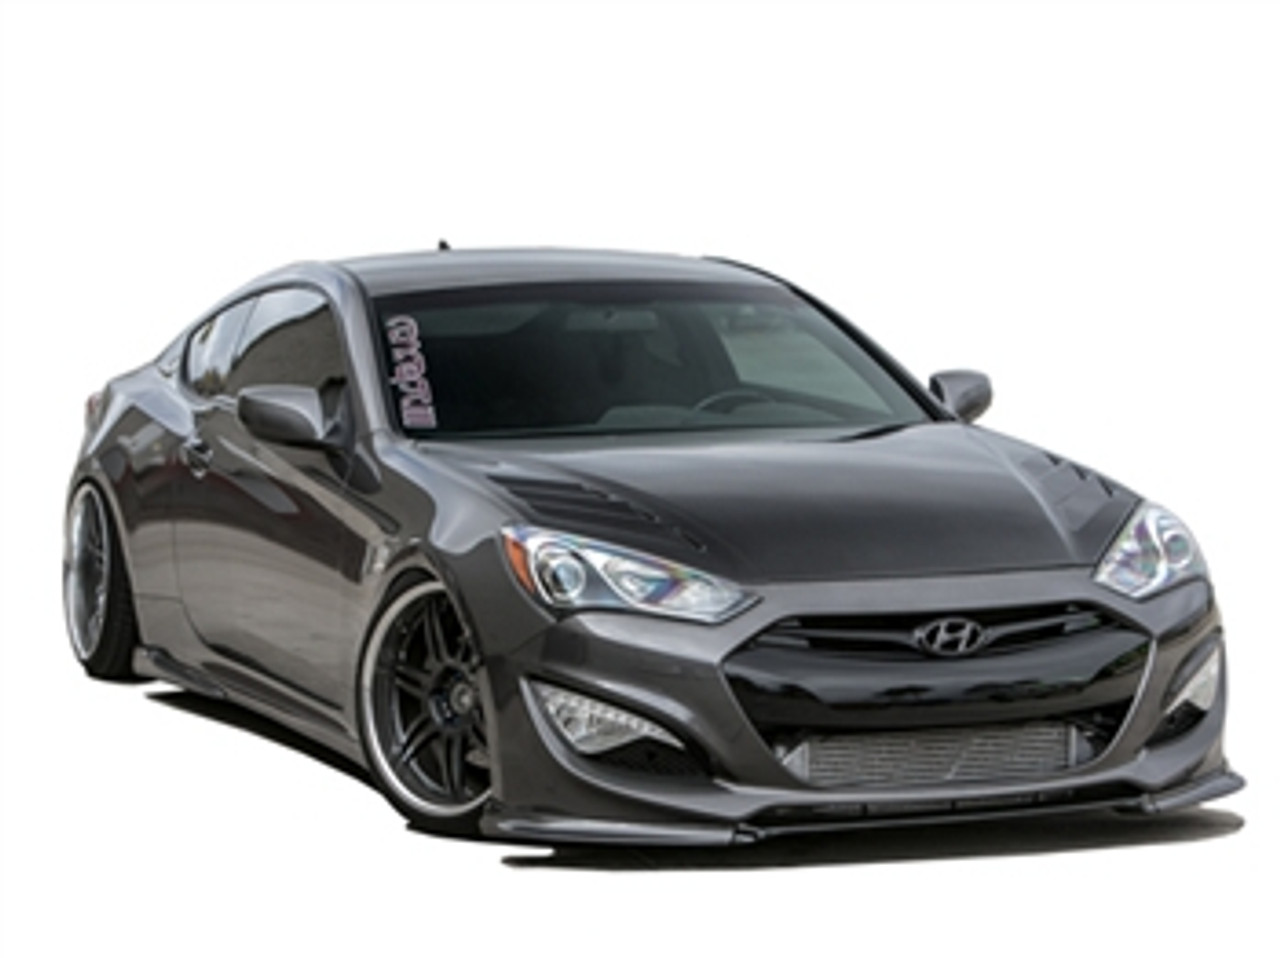 Genesis Coupe 2016 >> Rksport Carbon Fiber Vented Hood For Hyundai Genesis Coupe 2013 2016